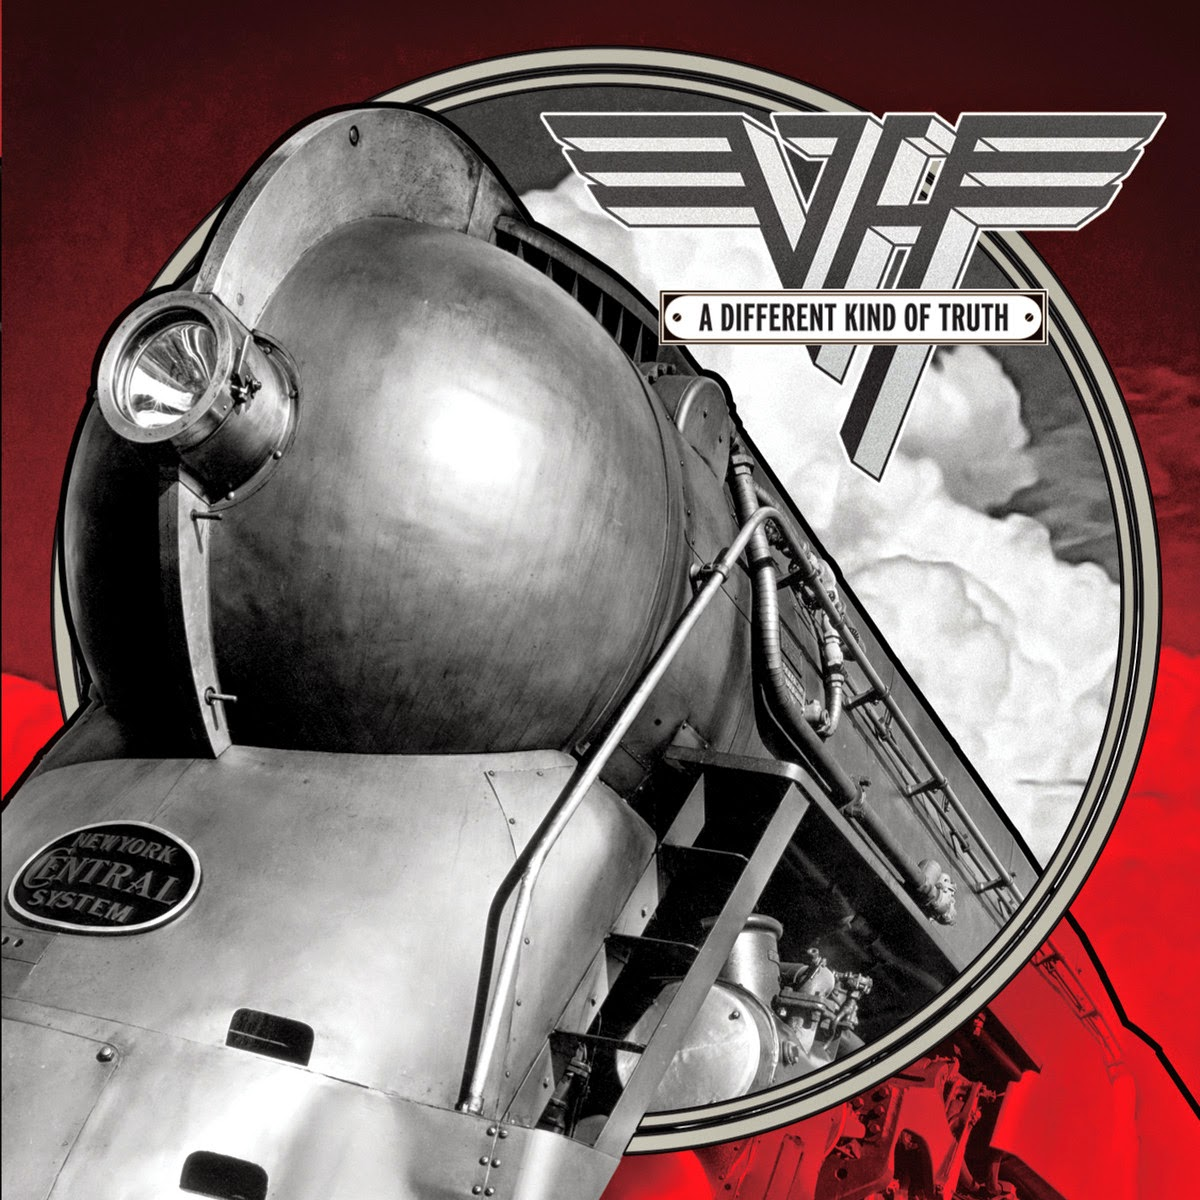 Van Halen - A Different Kind of Truth (Deluxe Version) Cover